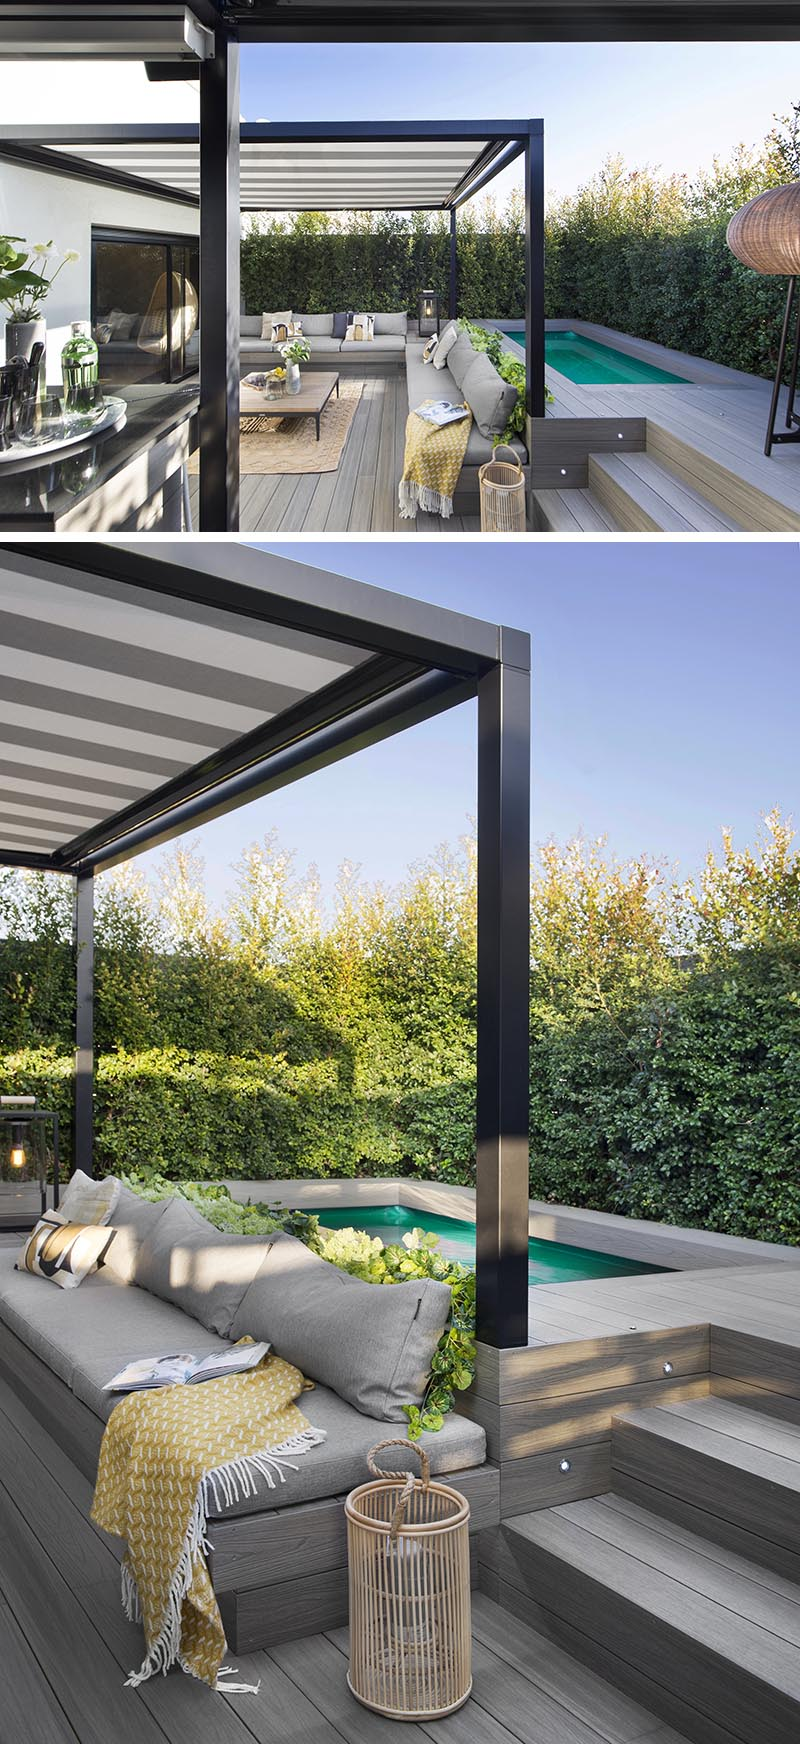 Almost hidden from view on this terrace is the small swimming pool, that's located behind the lounge. It's raised up so that when someone is in the pool, they are at the same height as the people sitting on the lounge. #Terrace #SwimmingPool #OutdoorLounge